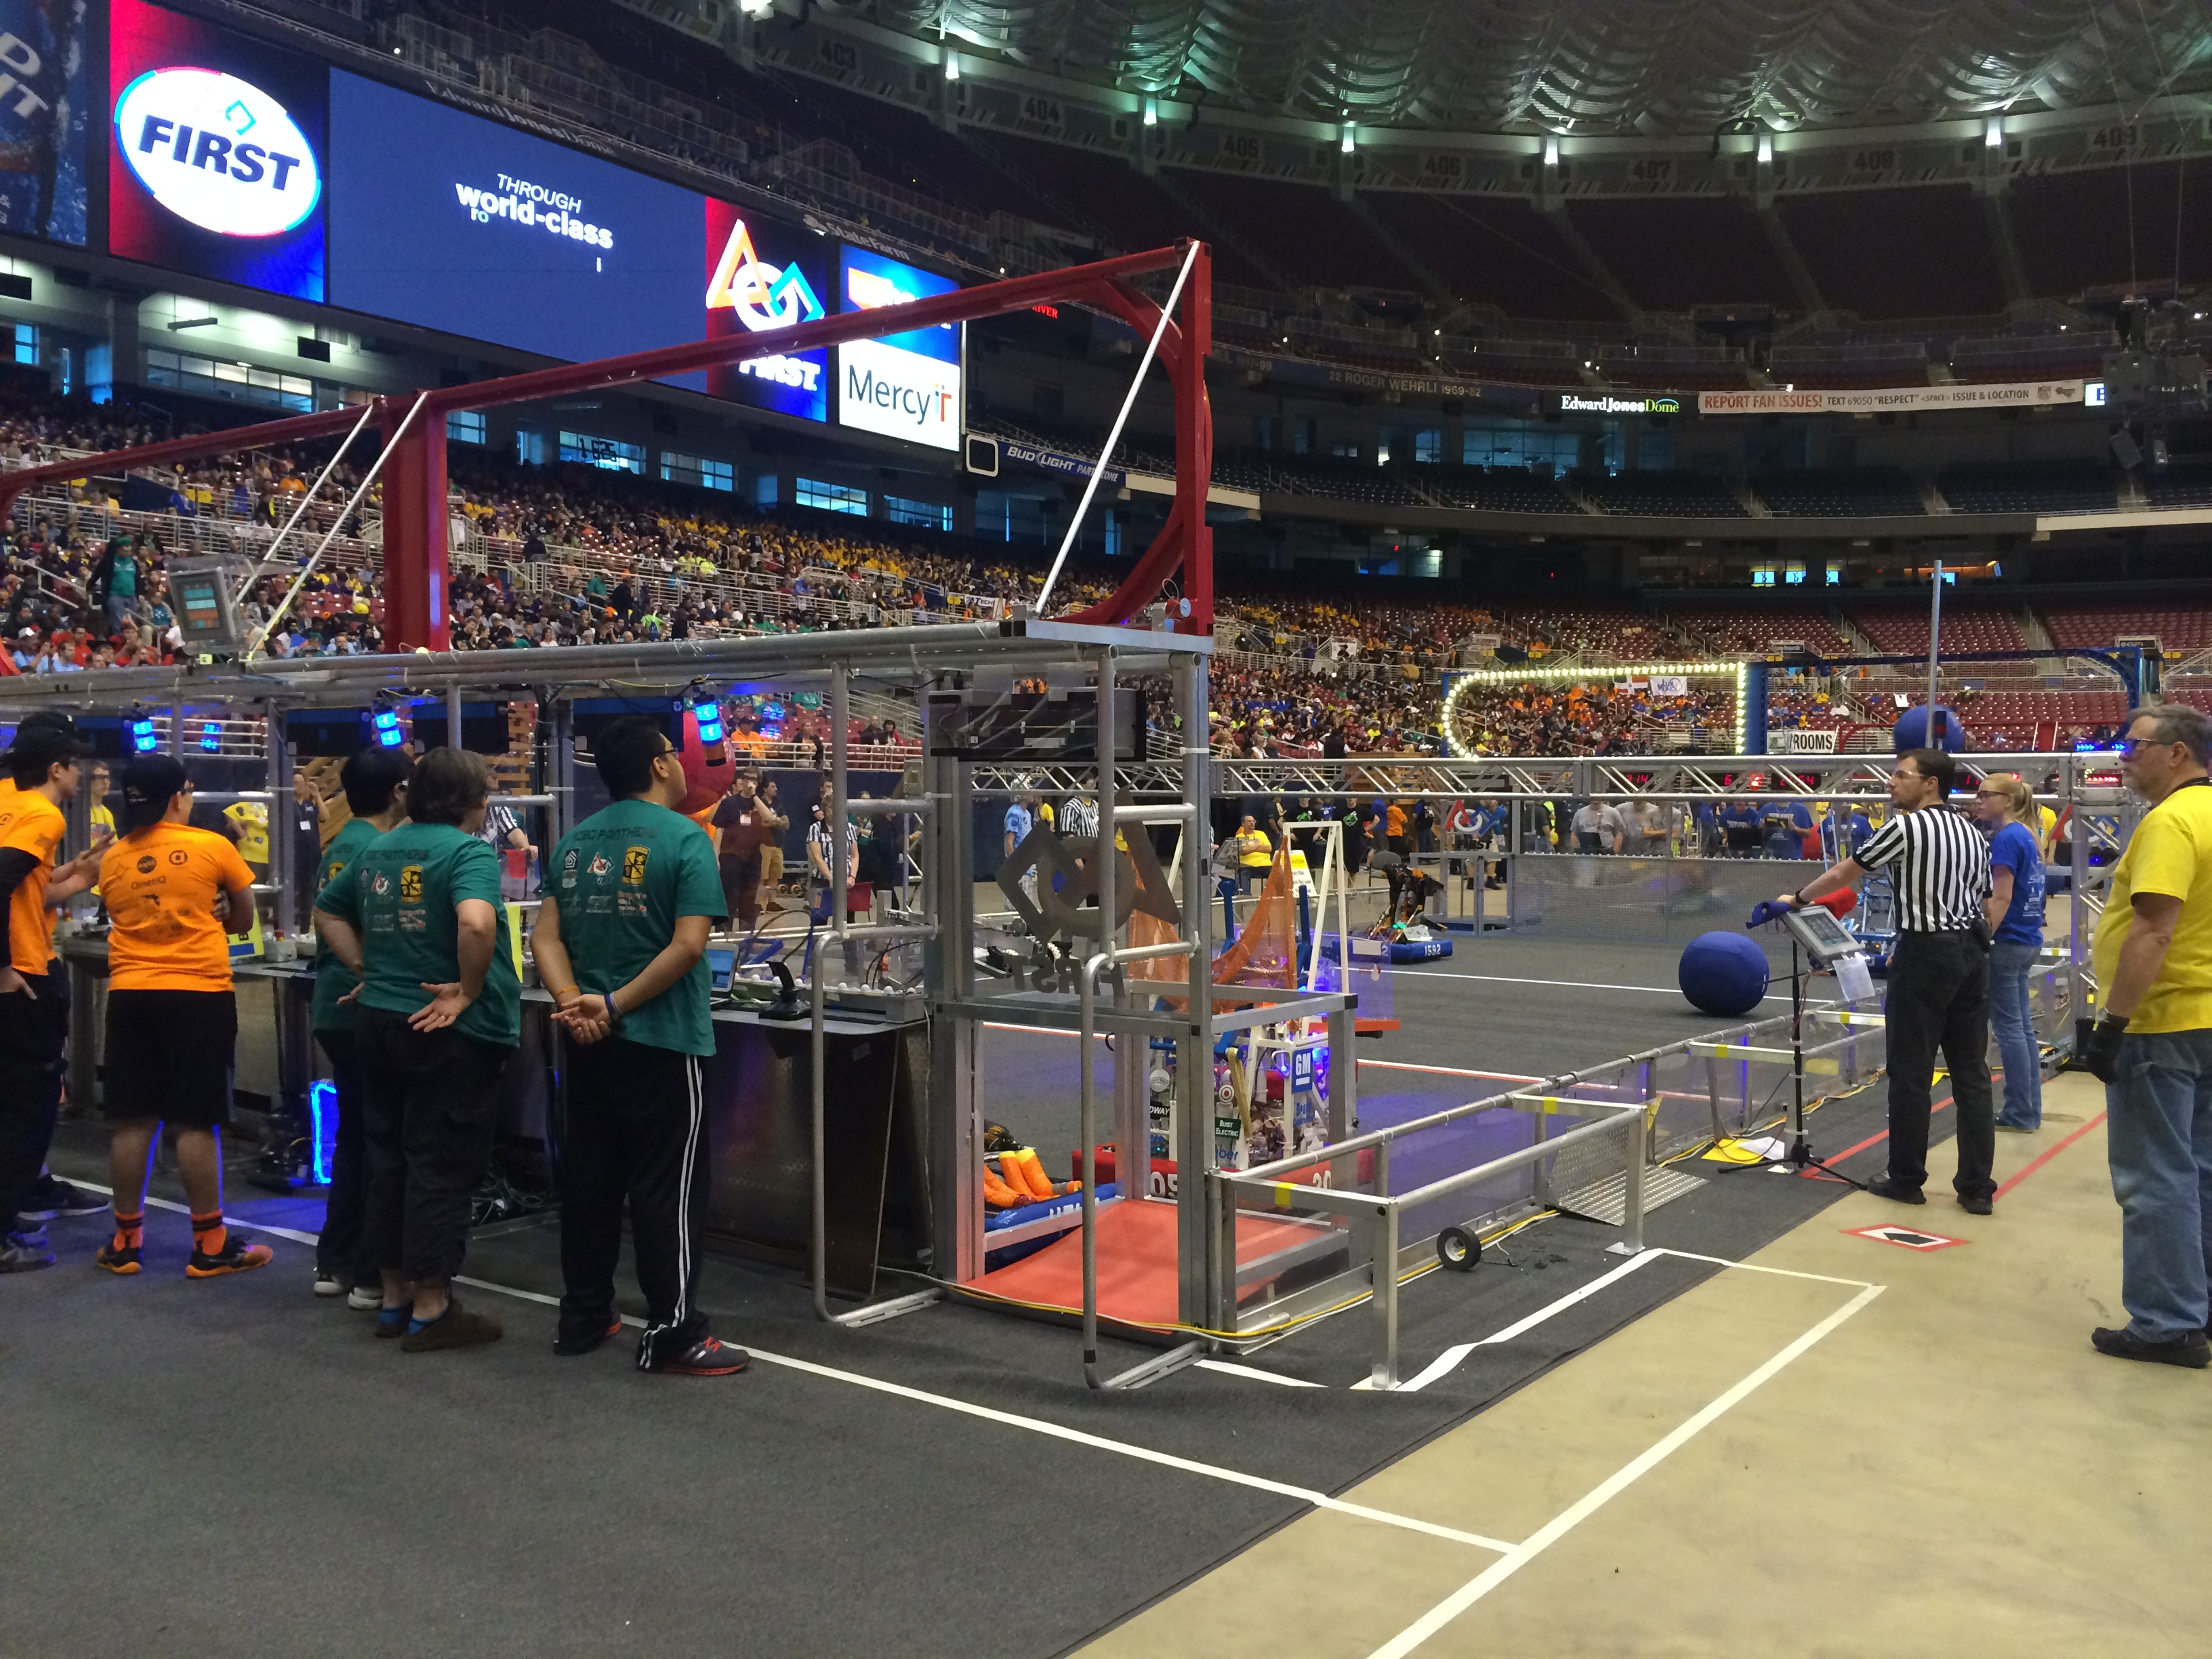 FIRST Robotics Image 2